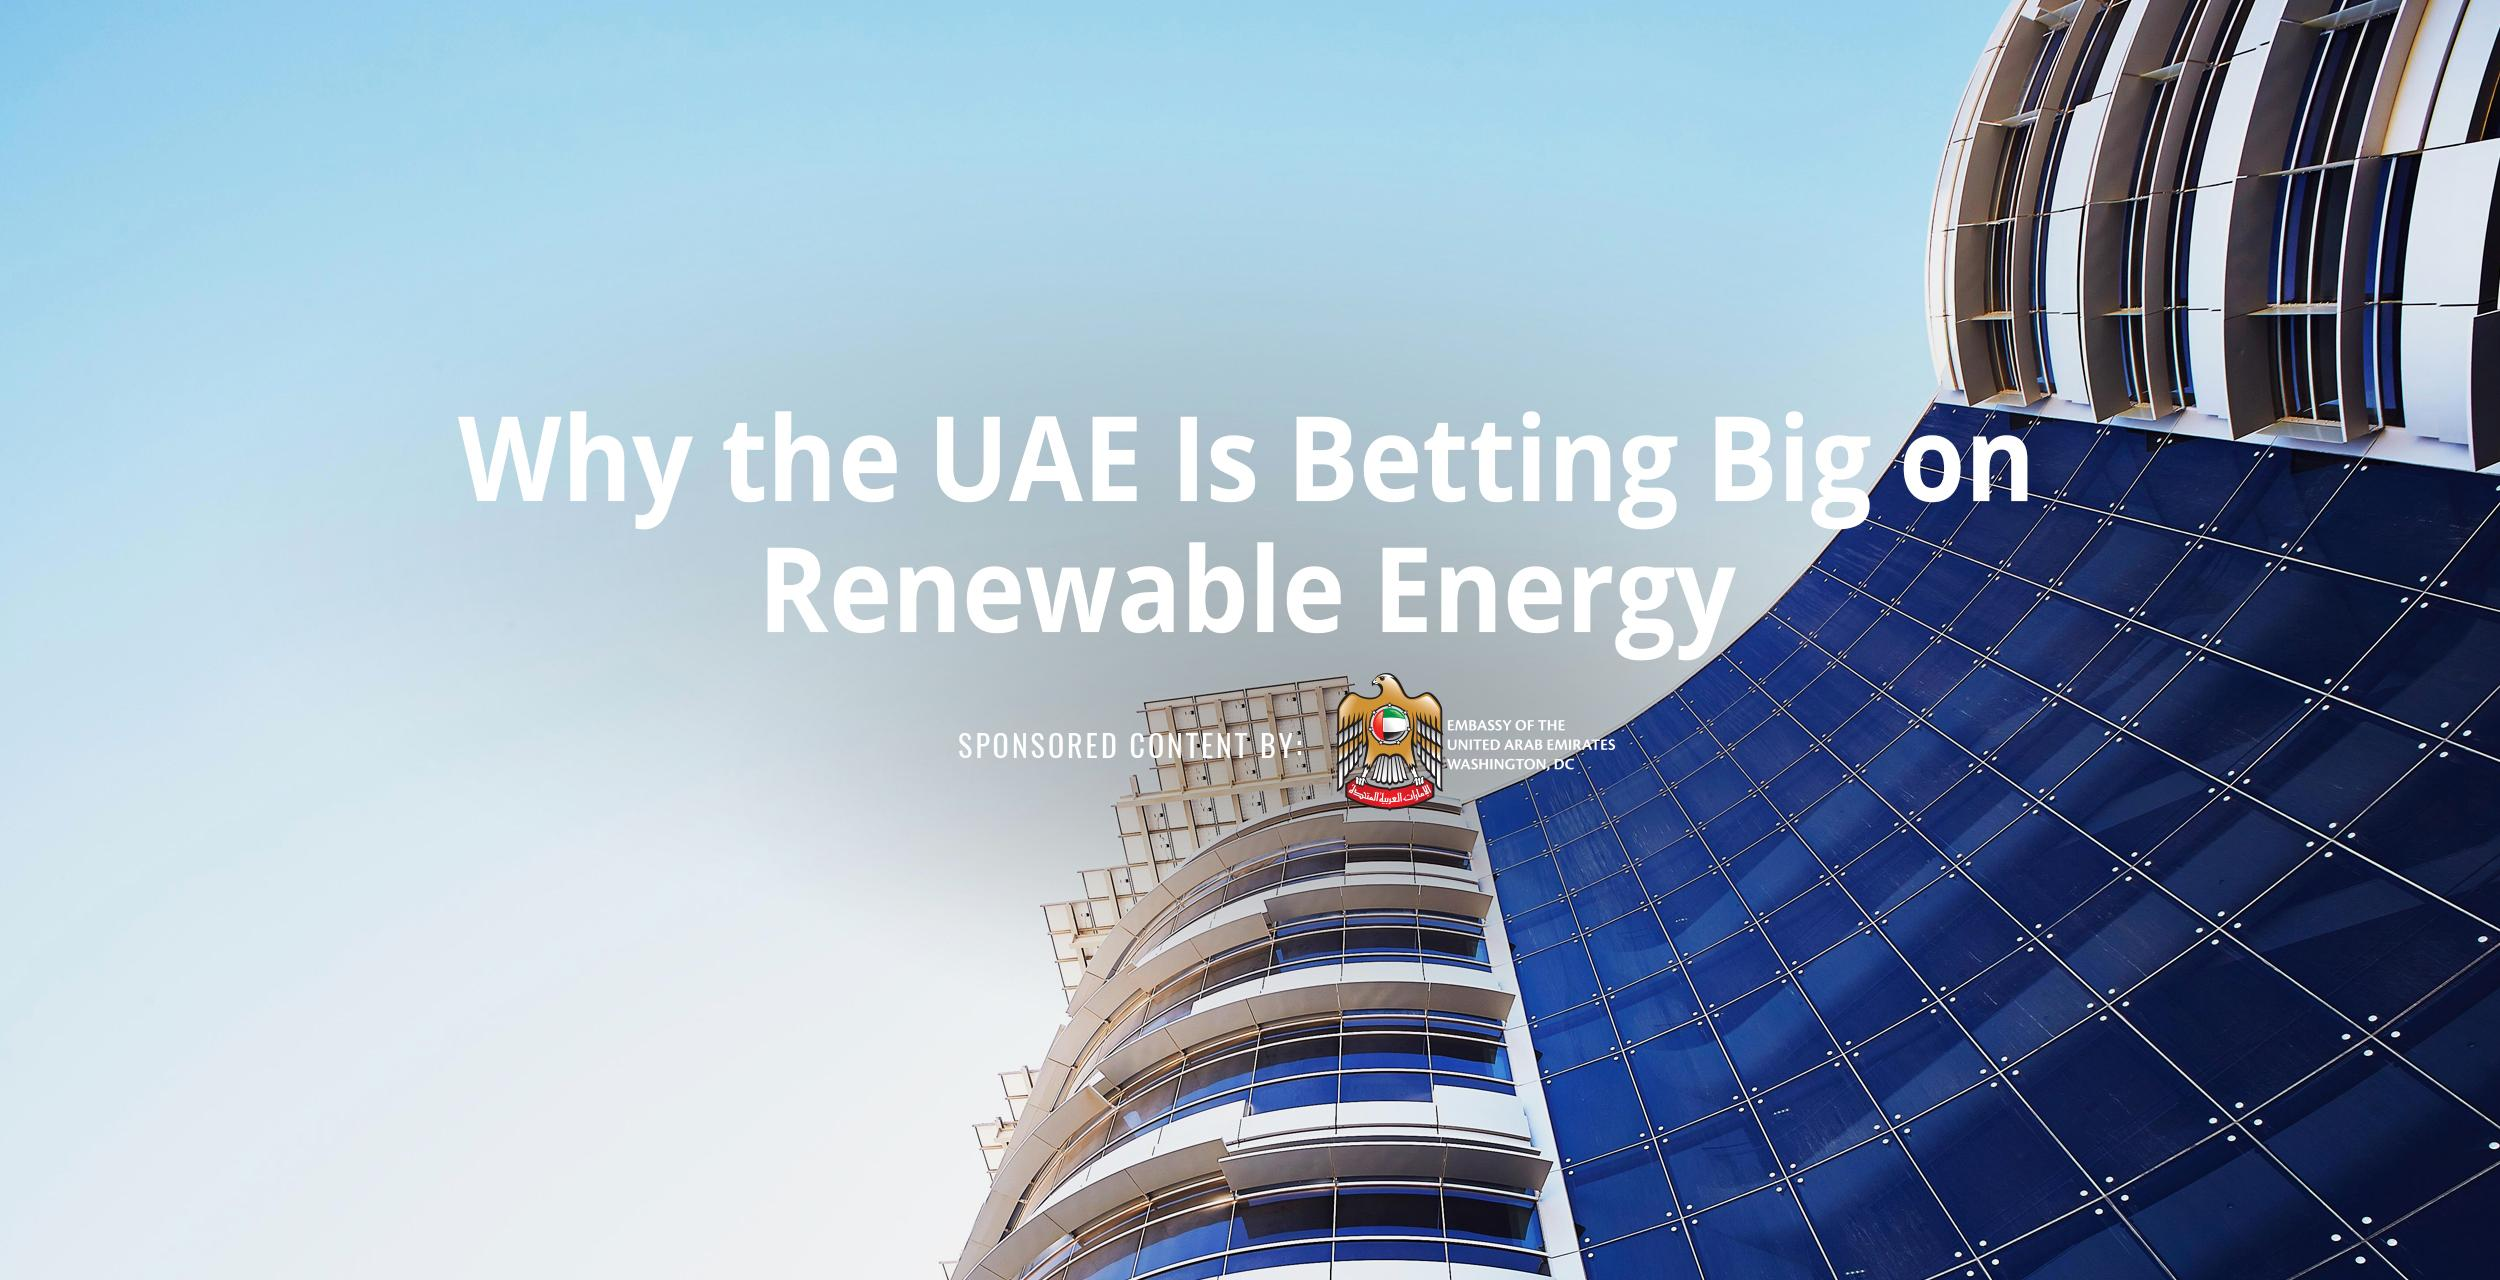 Why the UAE Is Betting Big on Renewable Energy